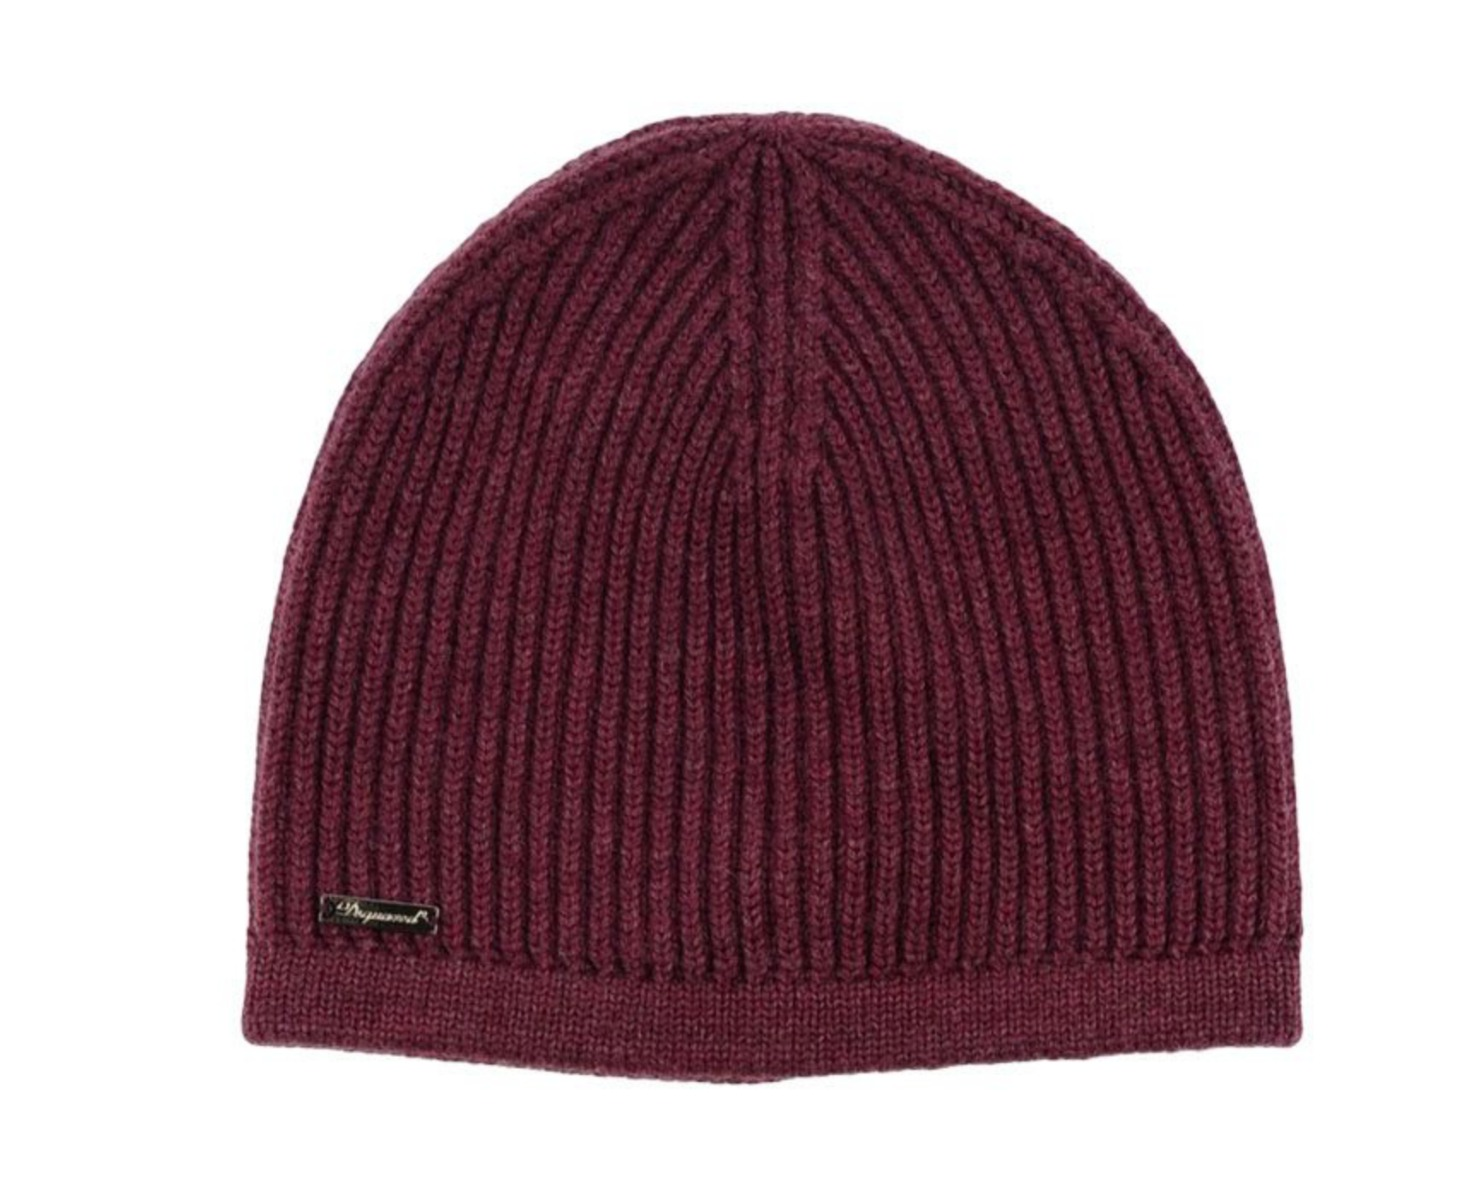 47322cc32 Details about DSQUARED2 Unisex Wool Knit Beanie Hat in Deep Purple Made in  ITALY BNWT $230